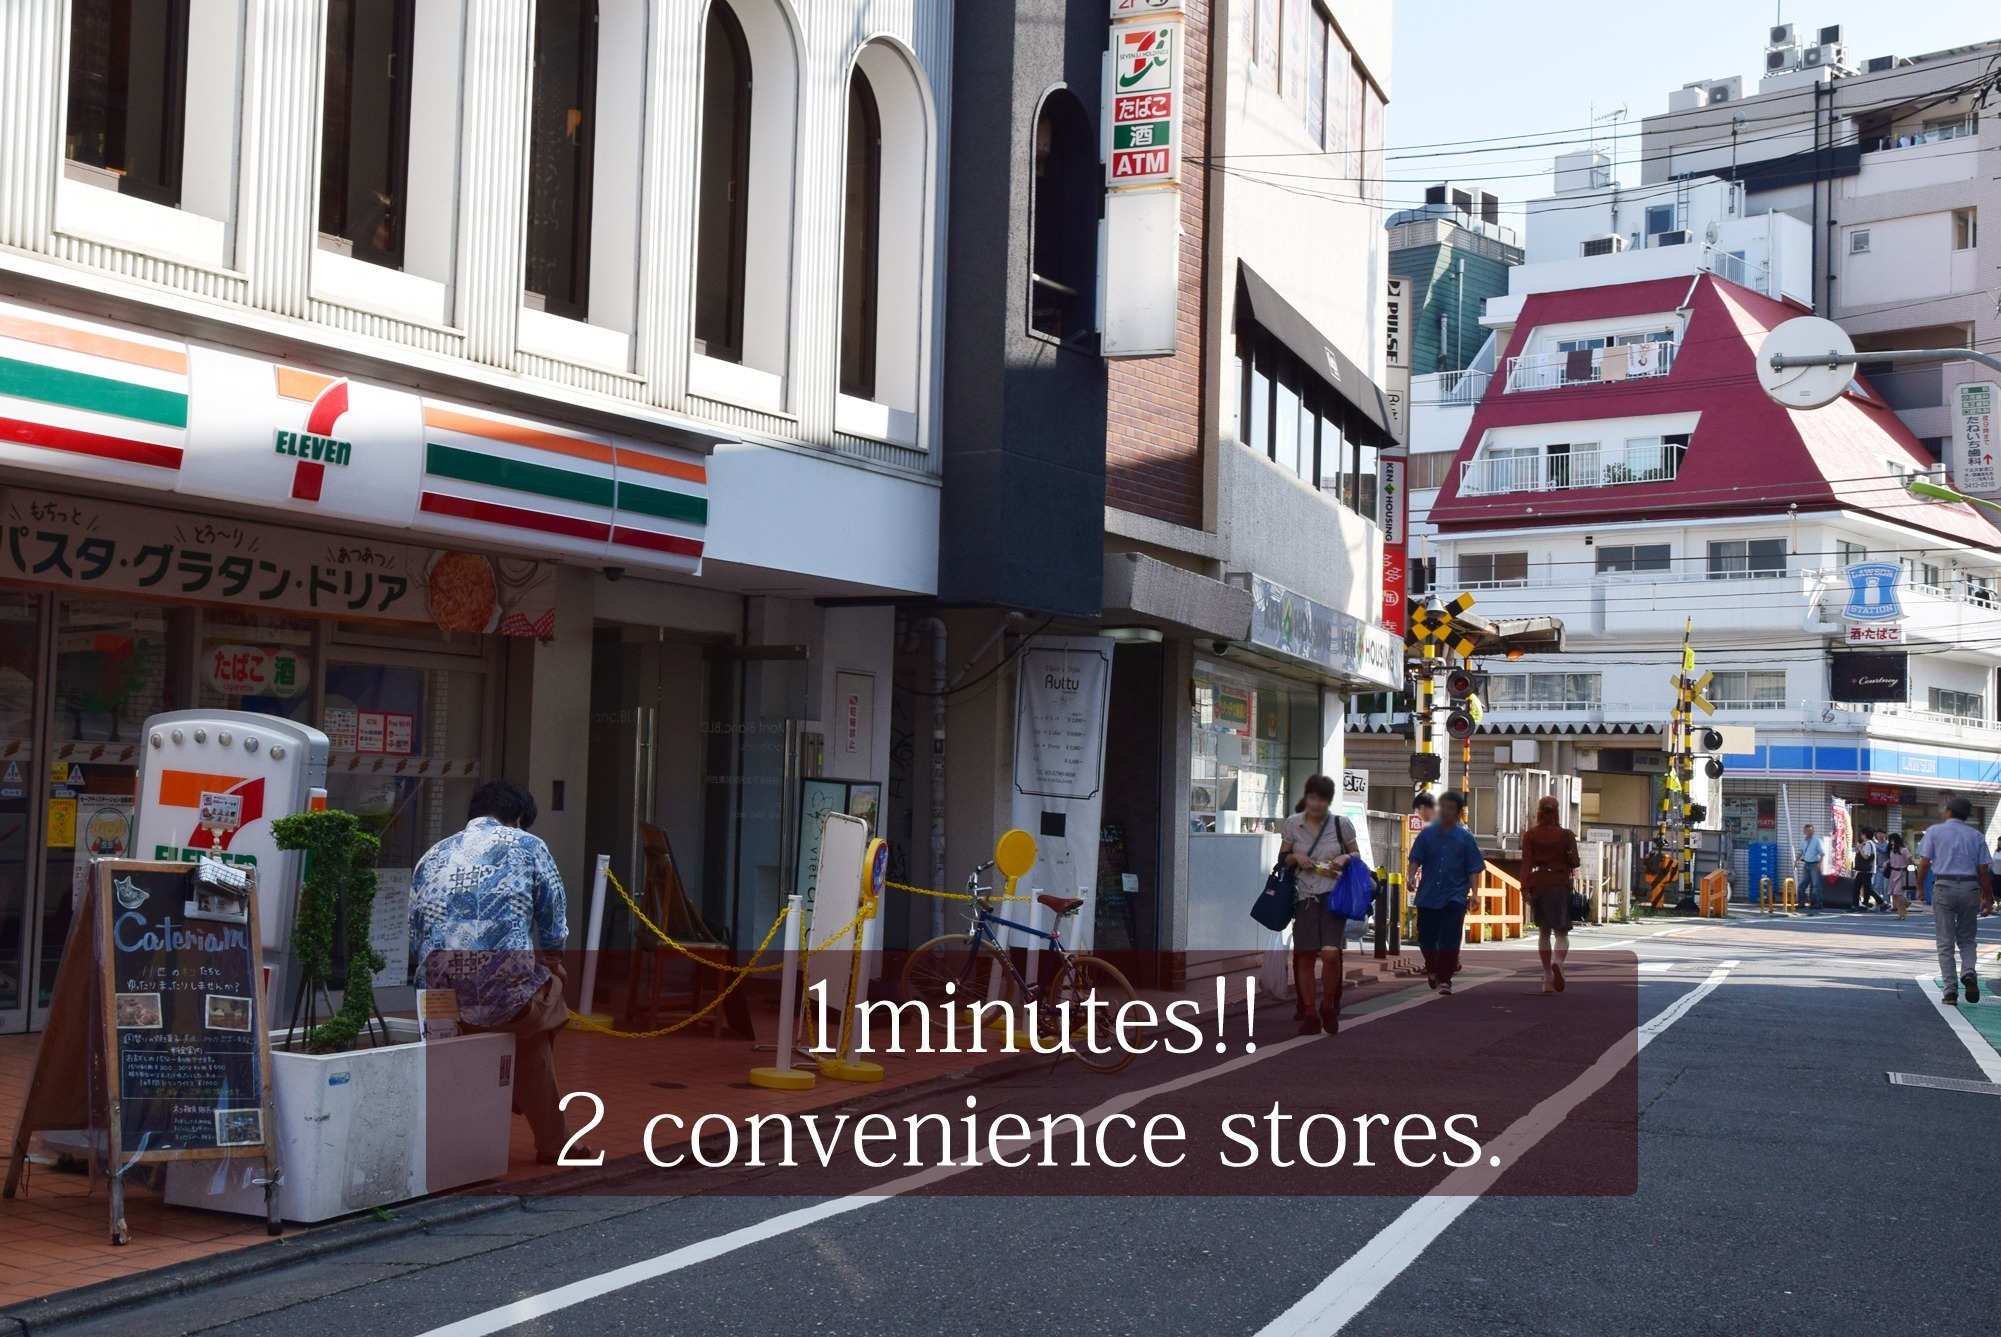 There are 2 convenience stores in 1 minute on foot. 24 hours open.